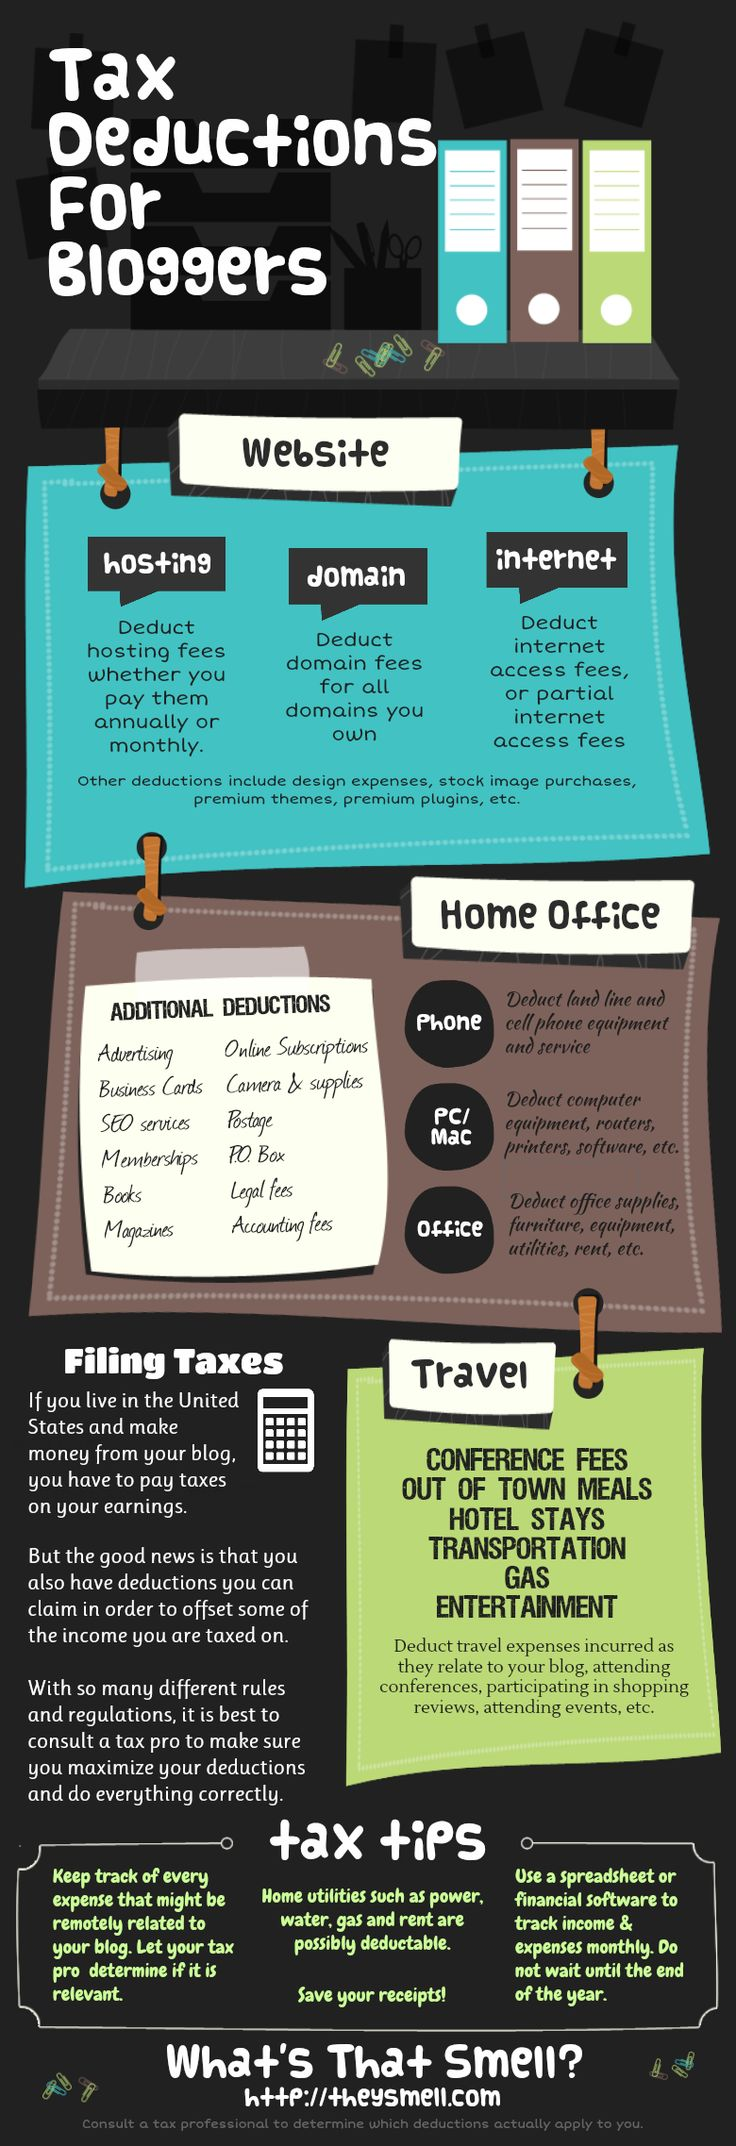 Tax deductions for bloggers. Make sure you're not missing any!